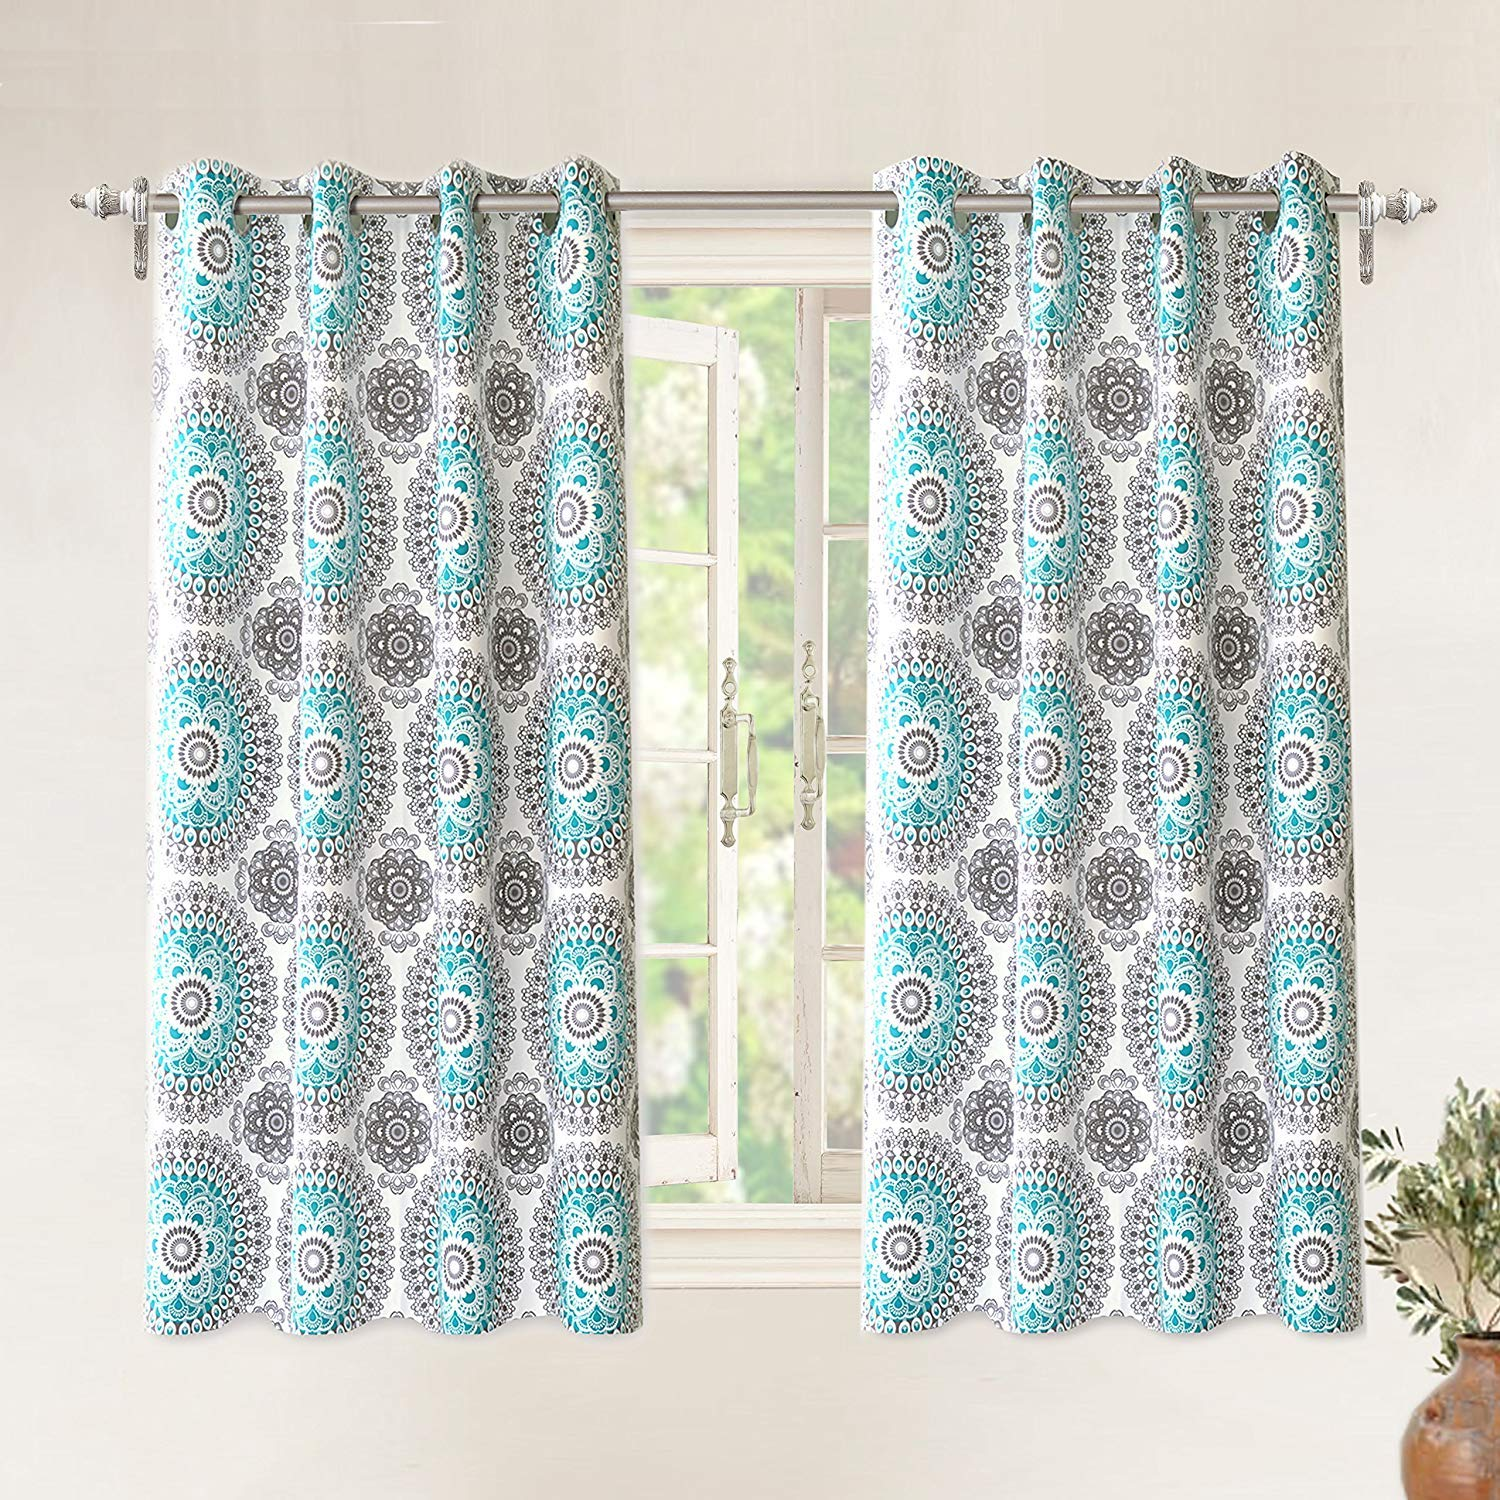 DriftAway Bella Medallion and Floral Pattern Room Darkening and Thermal Insulated Grommet Window Curtains 2 Panels Each 52 Inch by 63 Inch Aqua and Gray by DriftAway